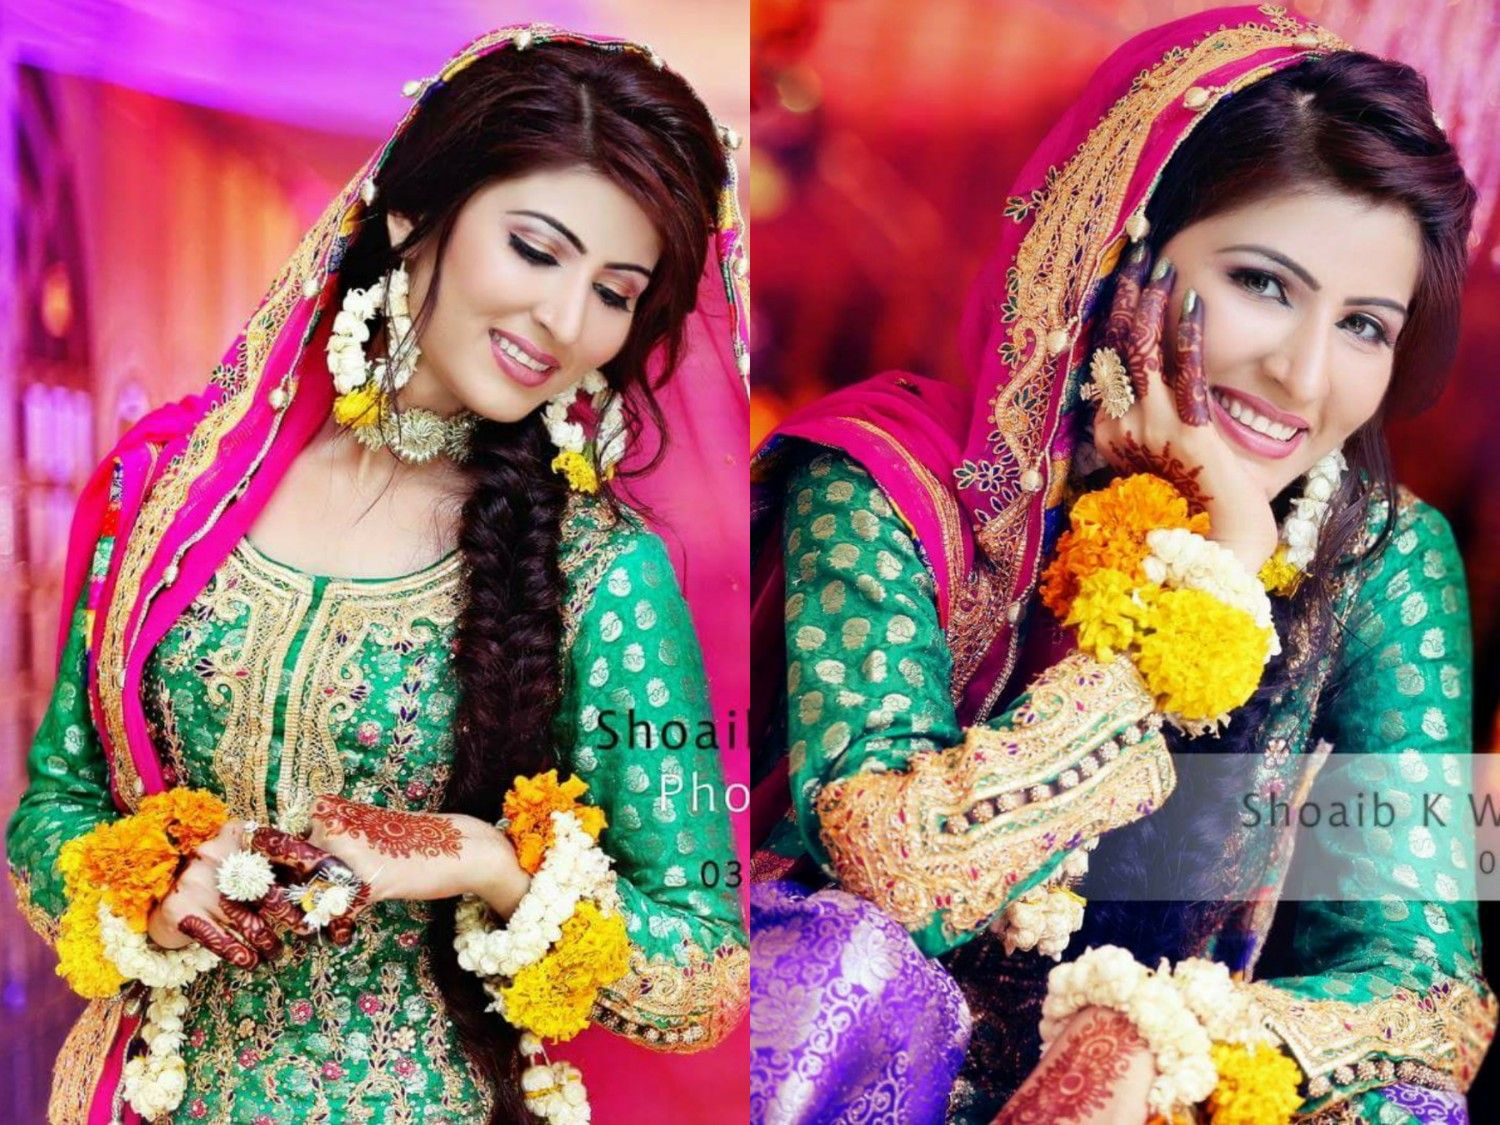 Mehndi Bridal Photoshoot : Photography by shoaib k blend of beauty and nature mehndi